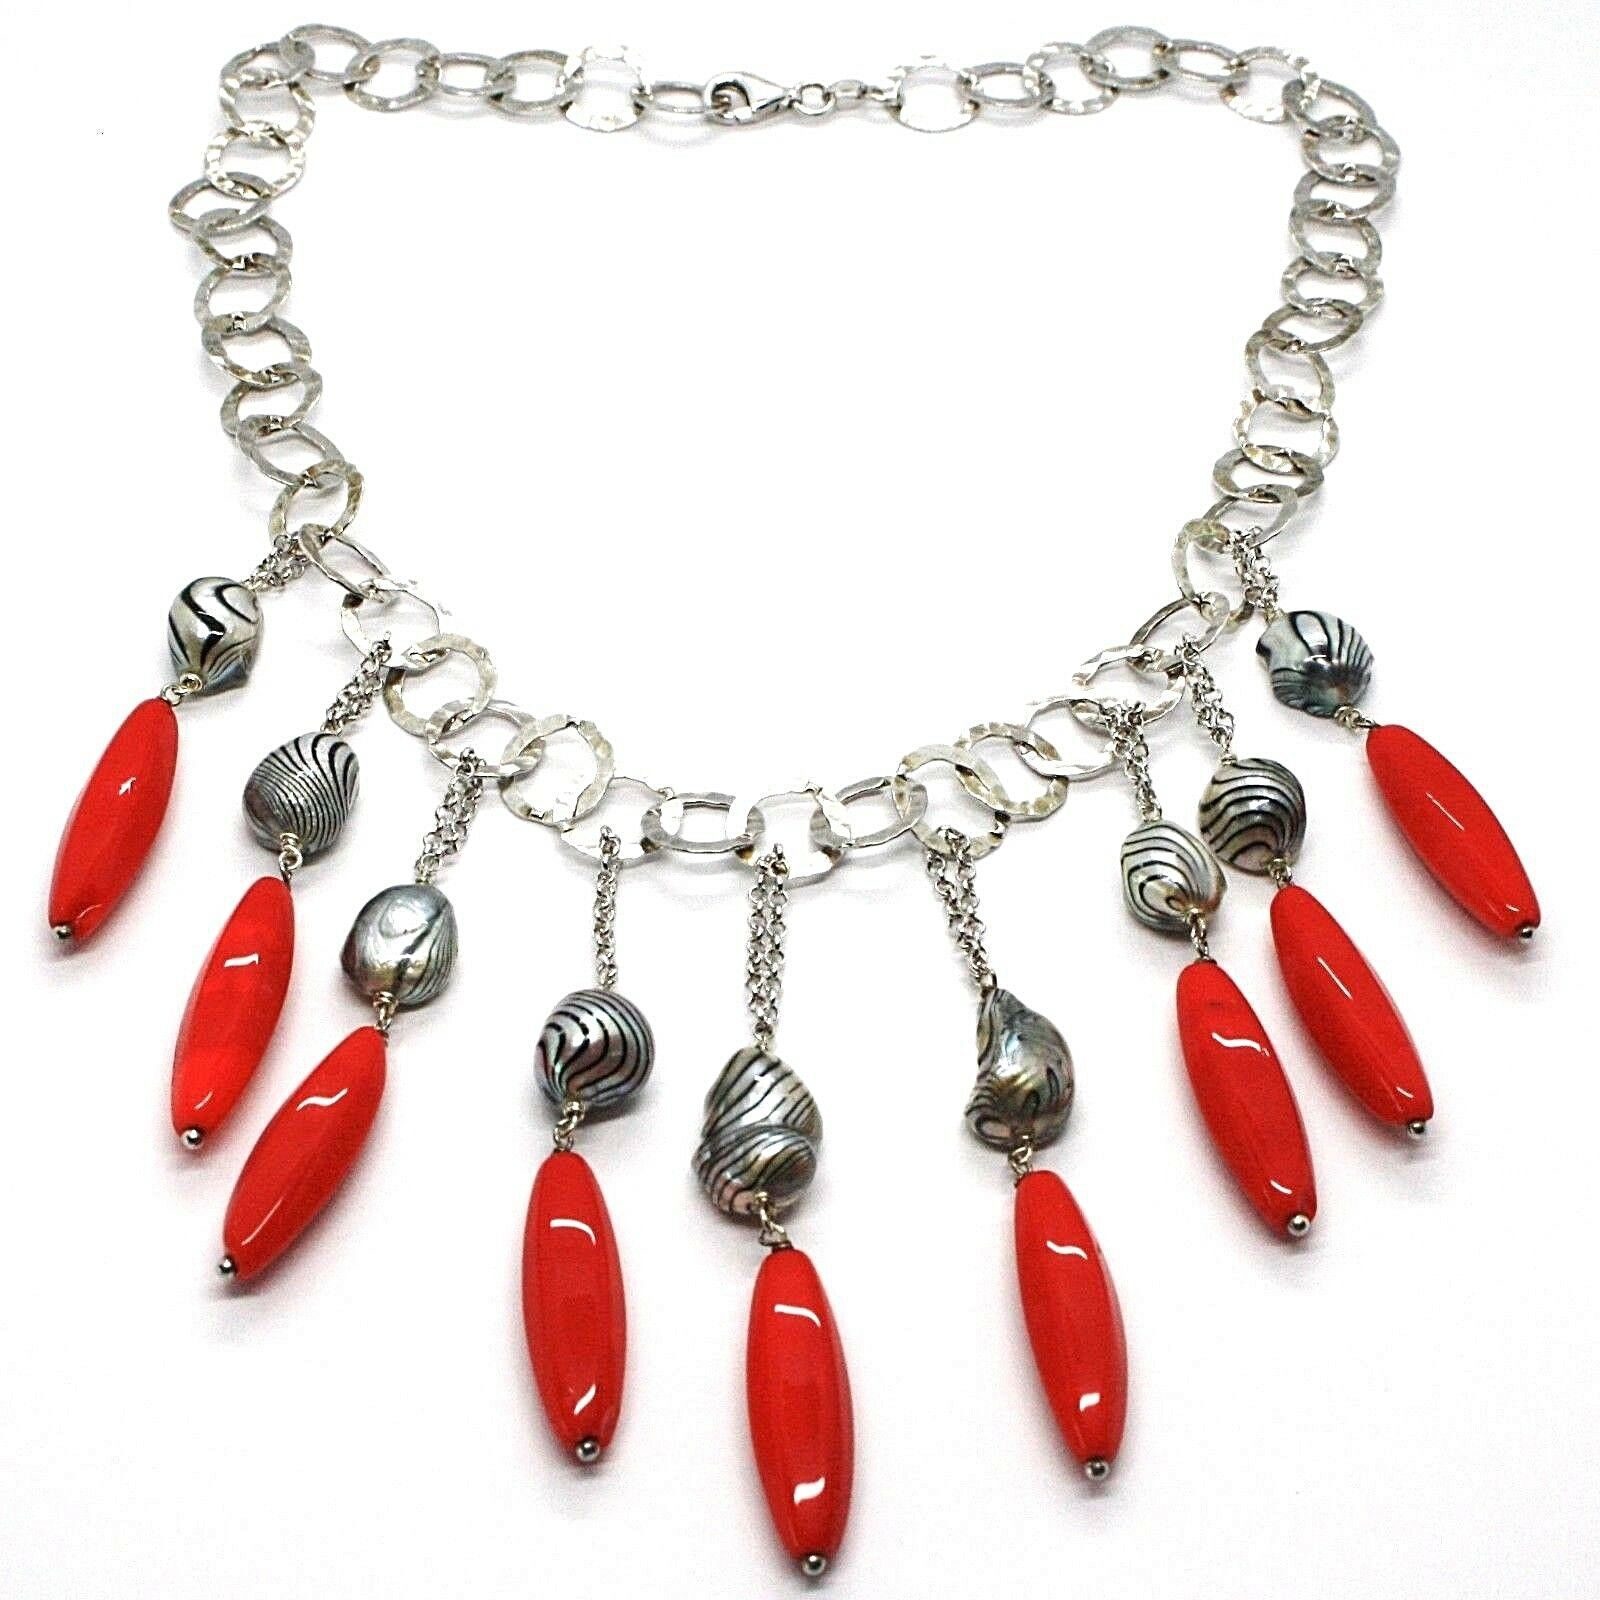 Silver 925 Necklace, Coral, Pearls Grey Painted, Waterfall, Hanging